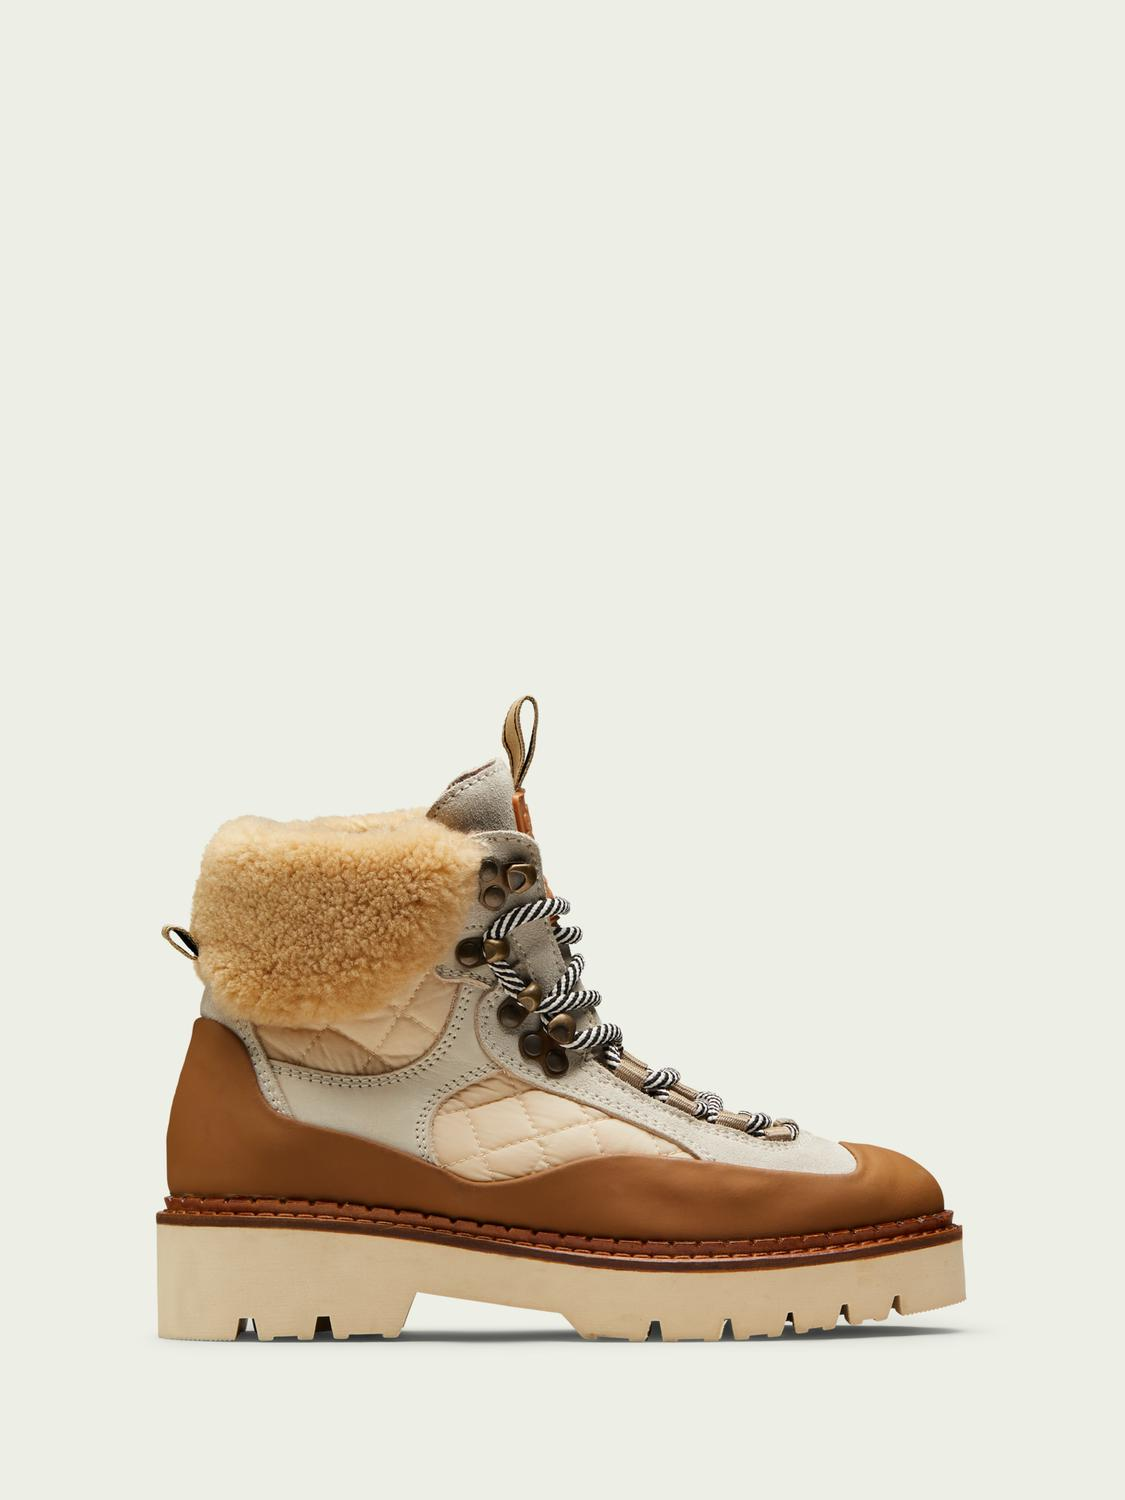 Olivine suede wool hiking boots